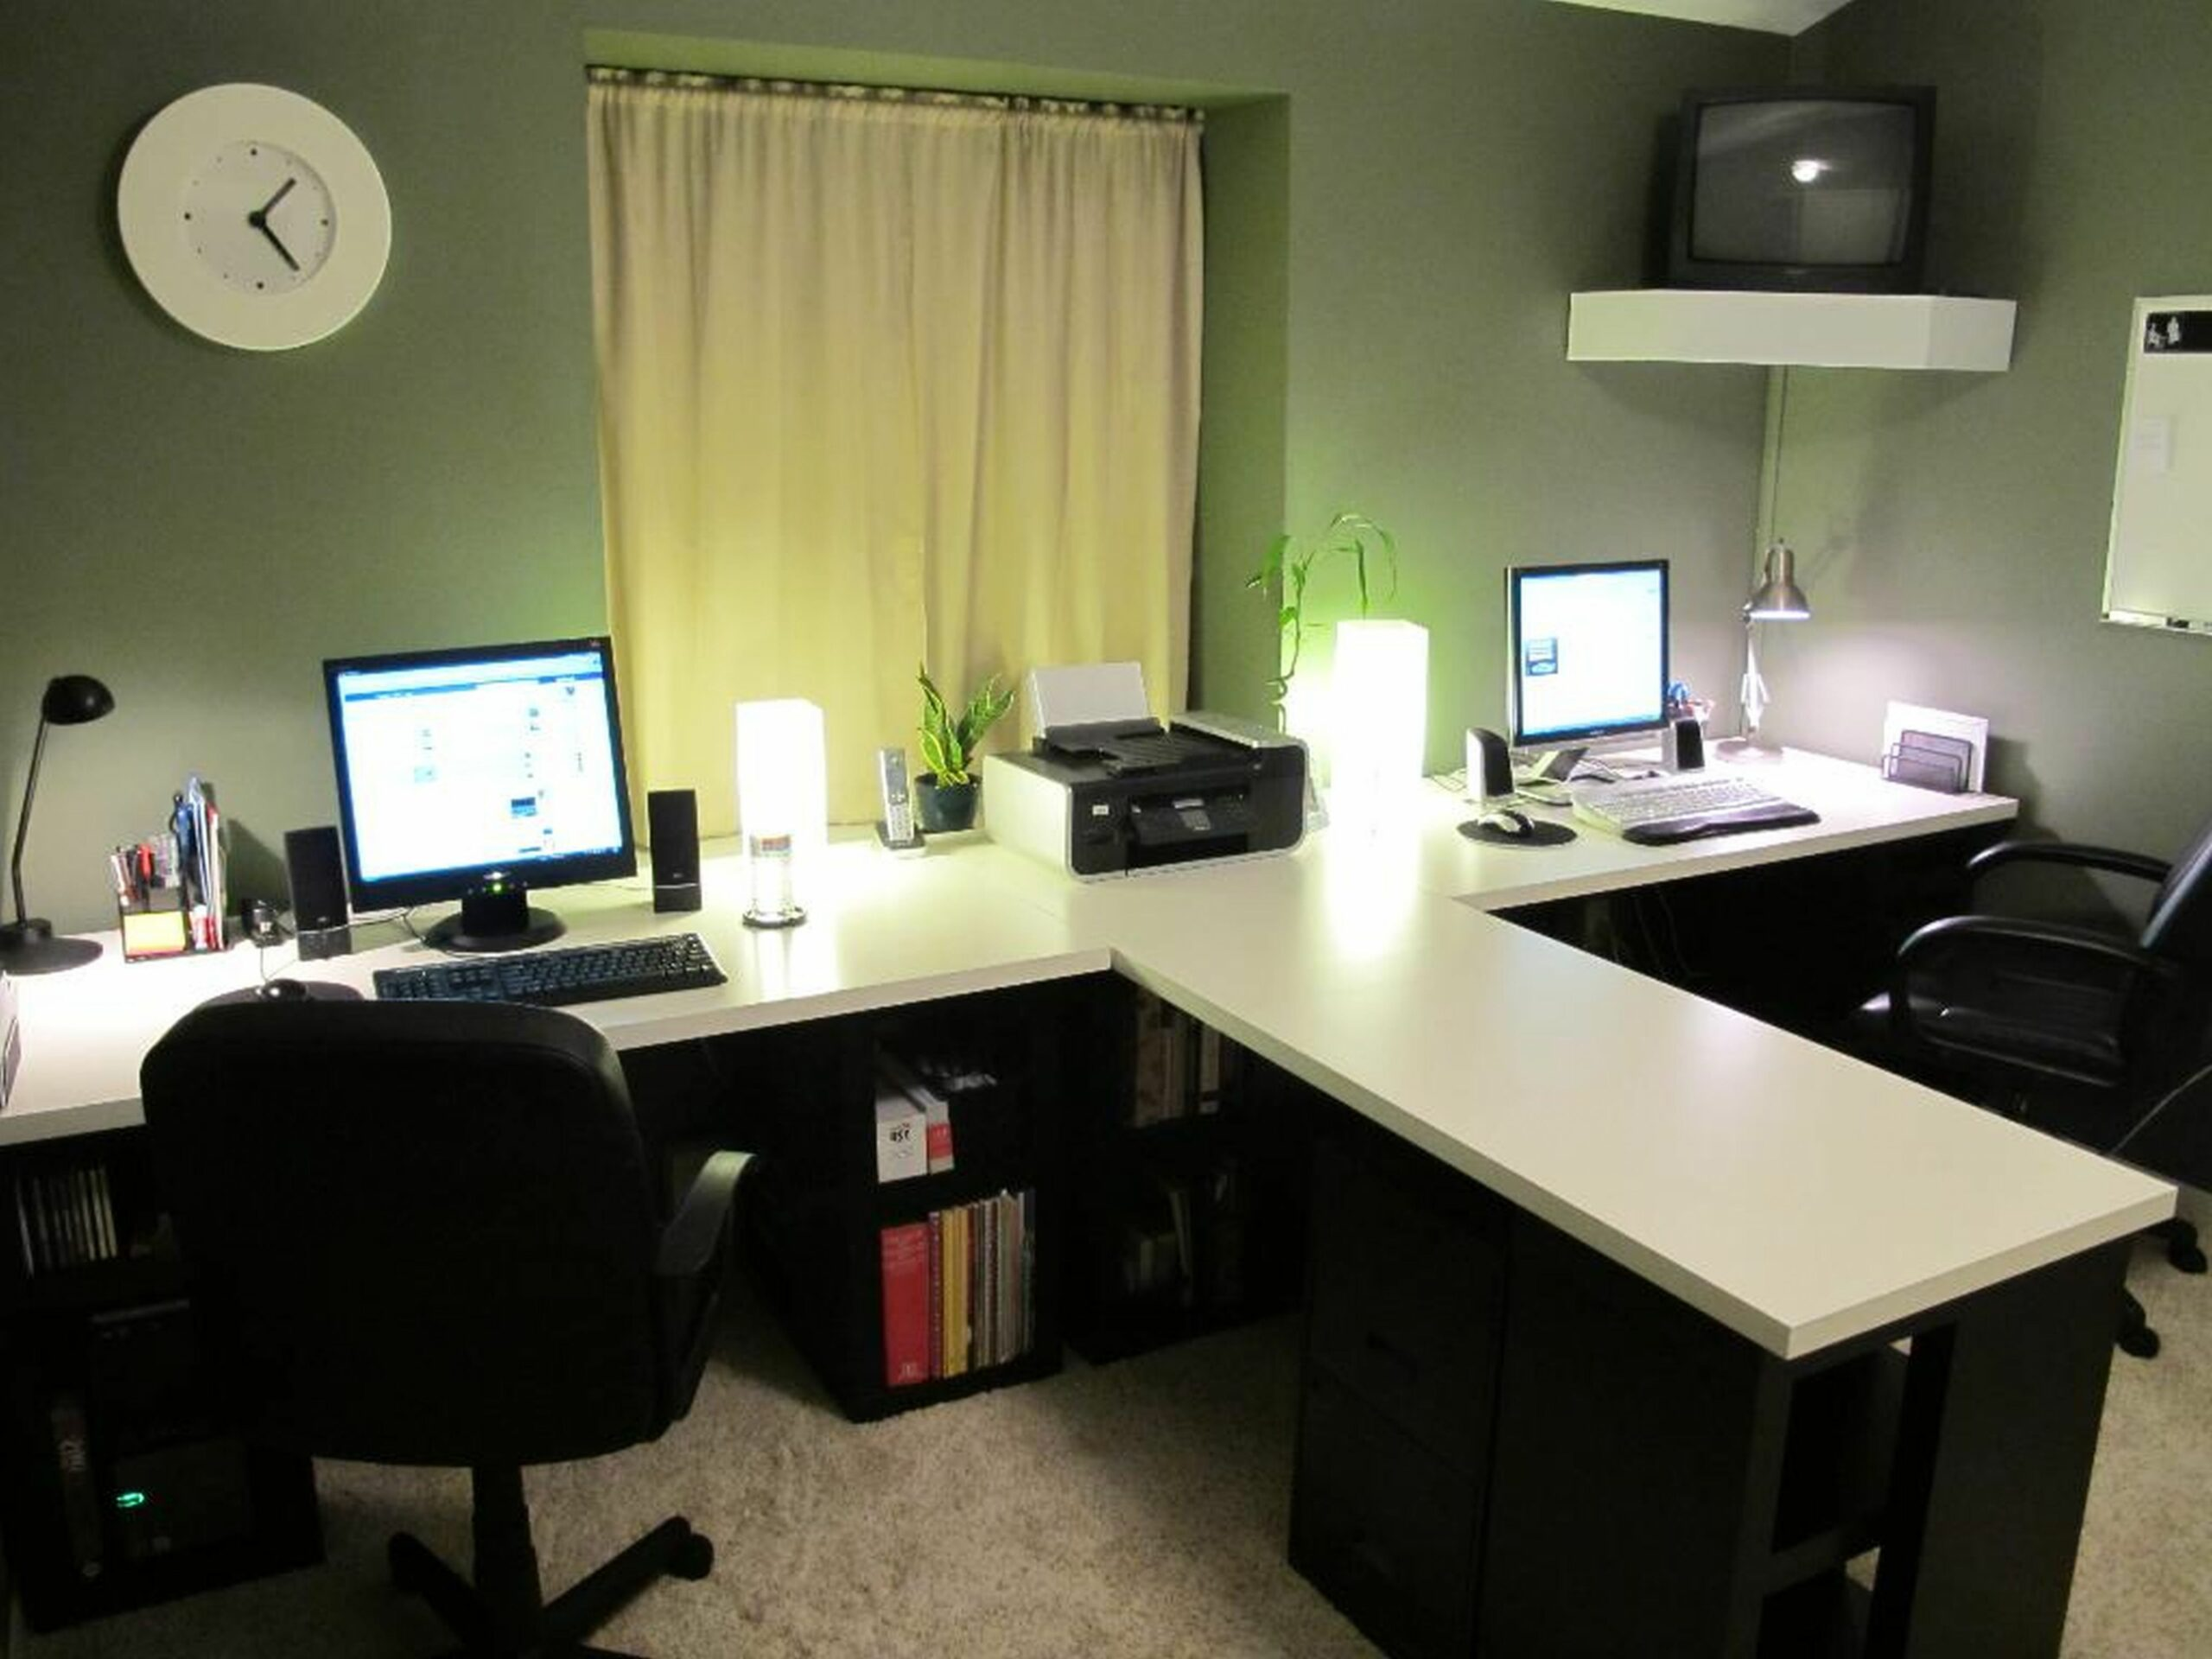 The ikea home office design uk up there is used allow the ..